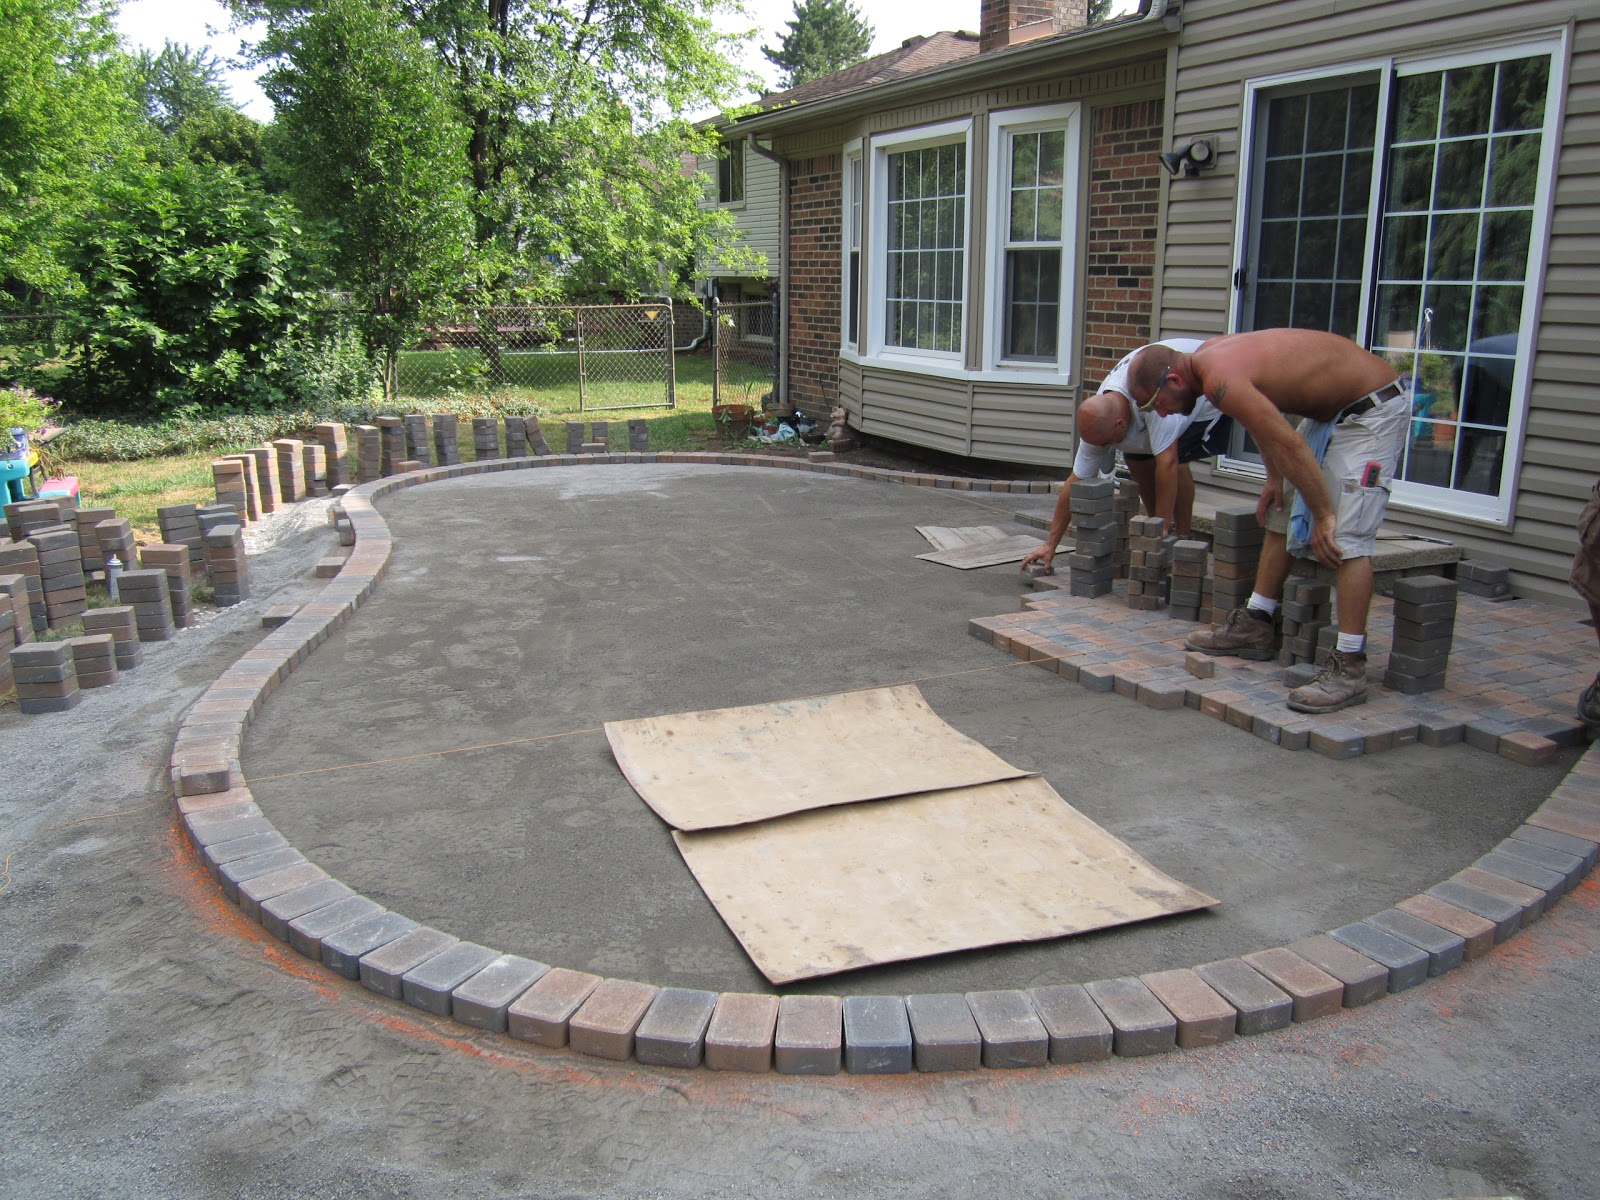 Brick paver patio ideas patio design ideas Paver patio ideas